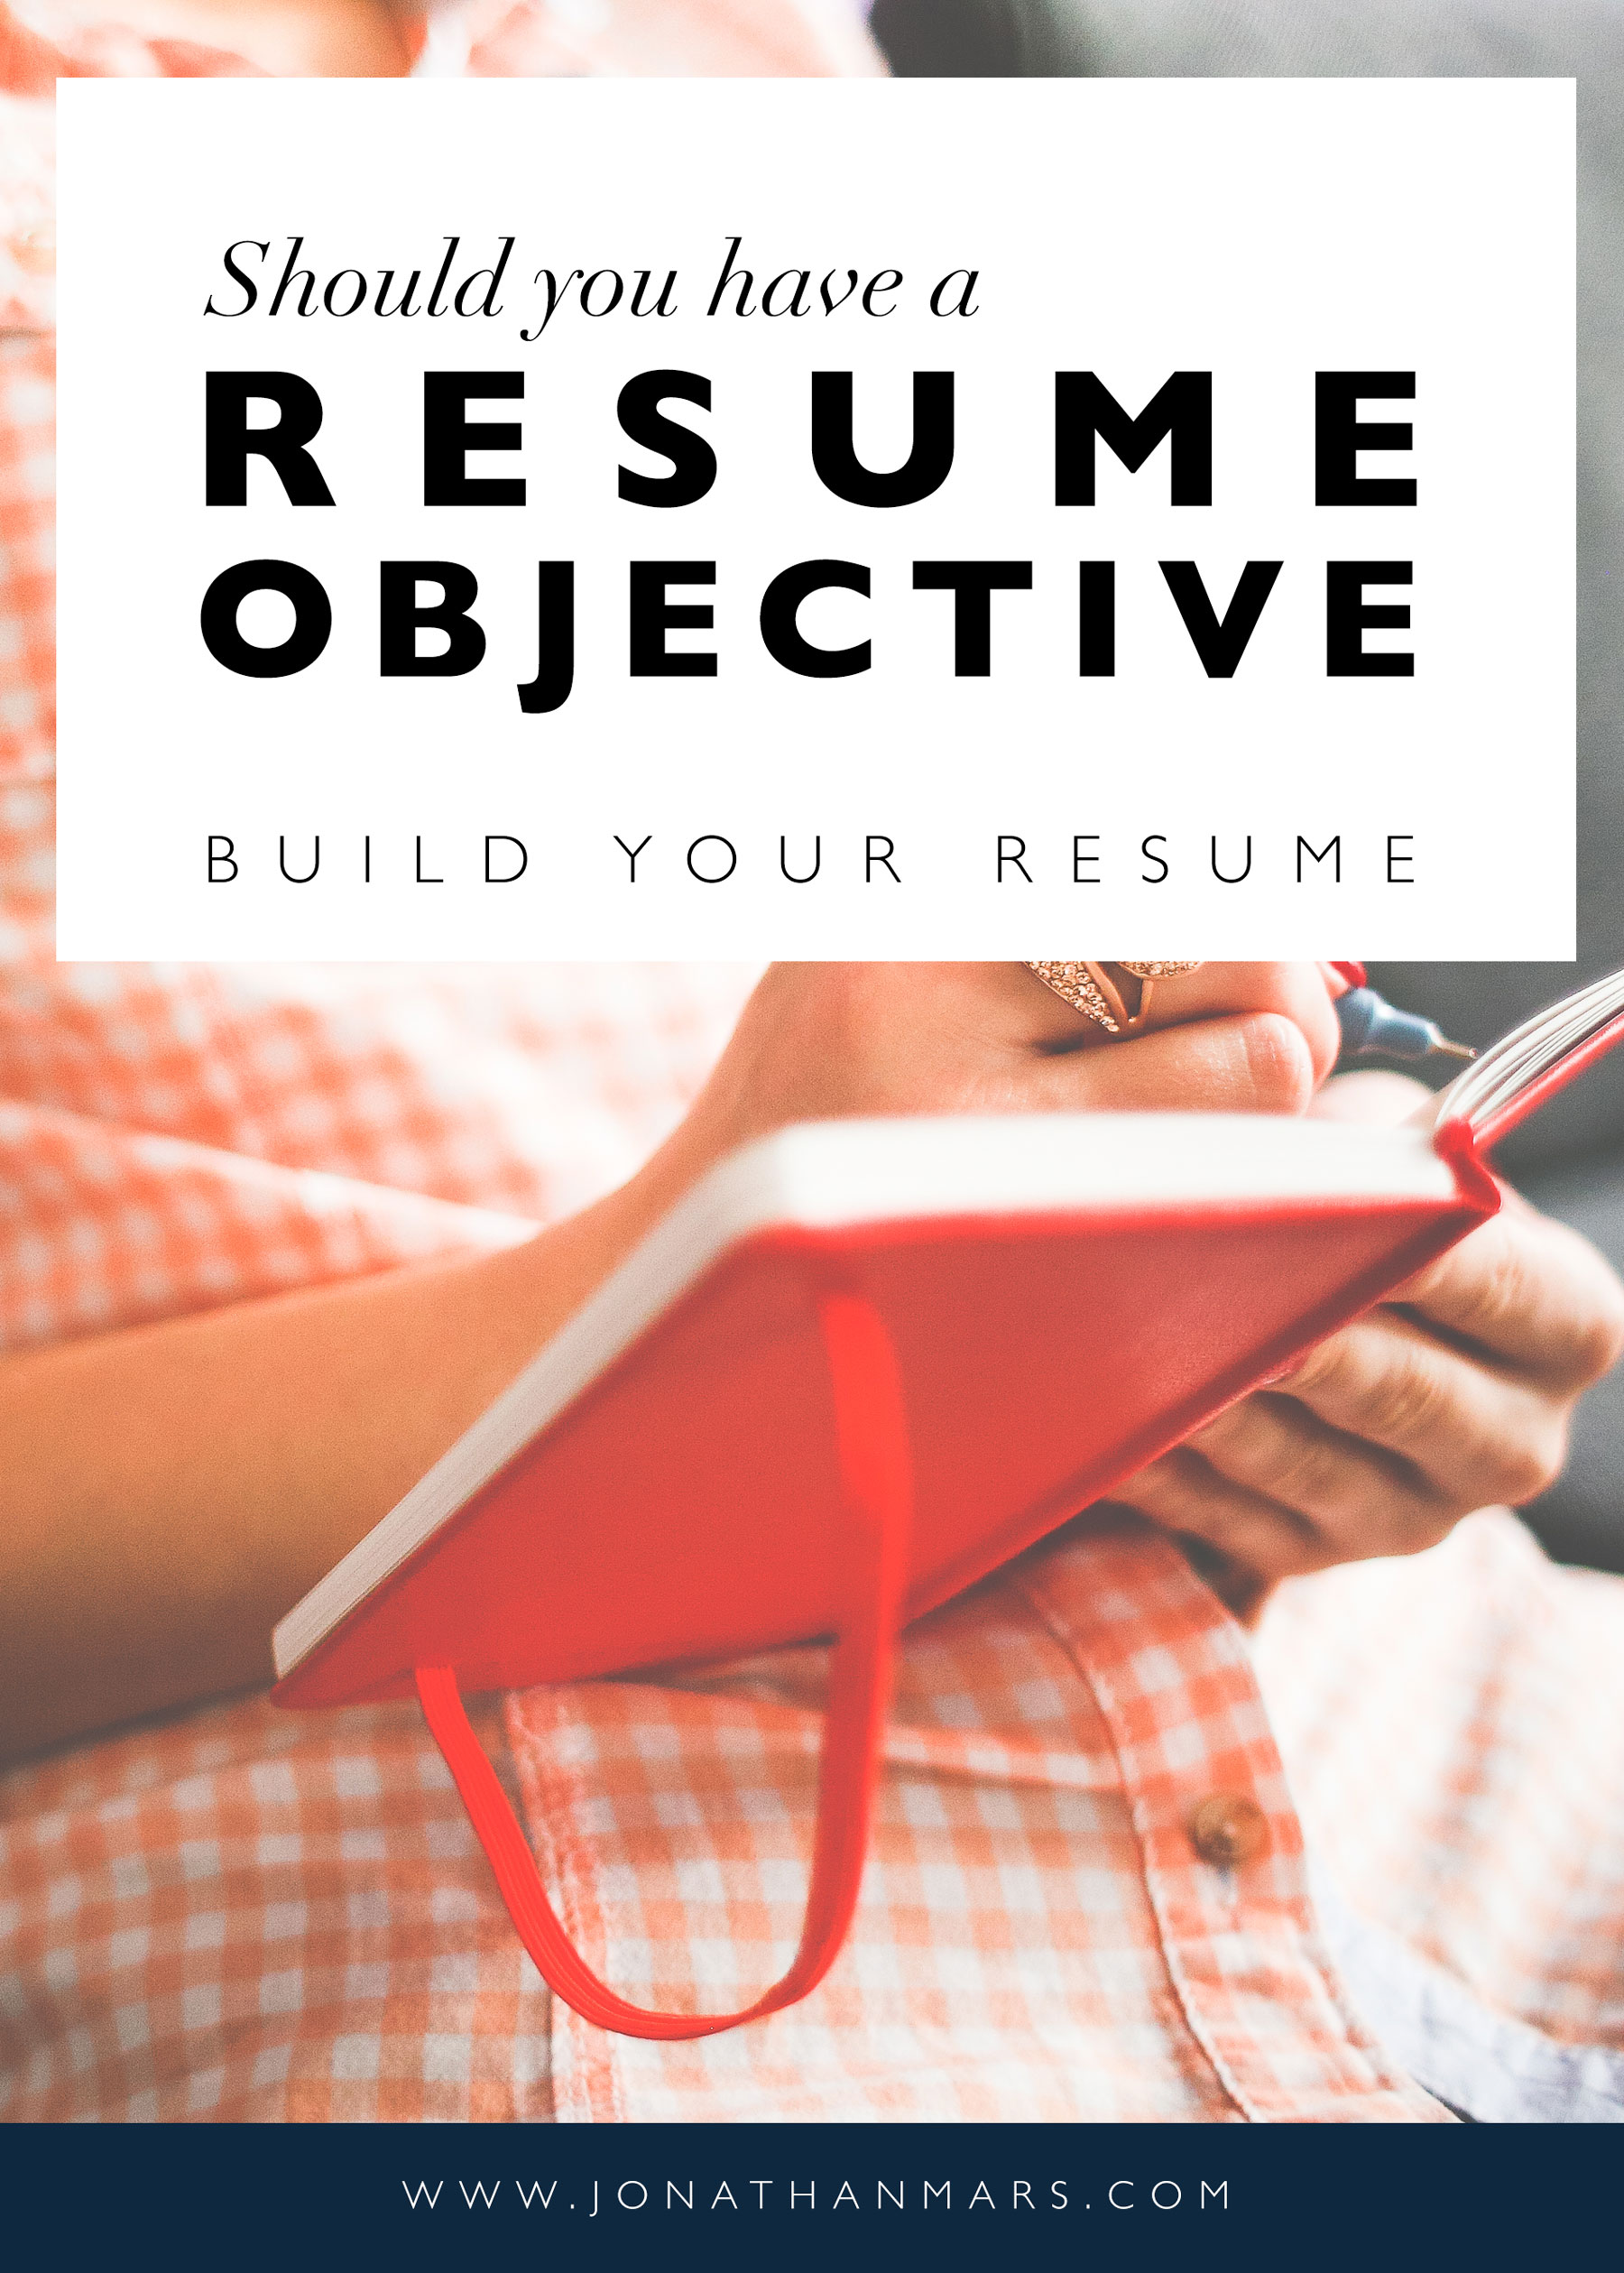 Should You Have a Resume Objective?